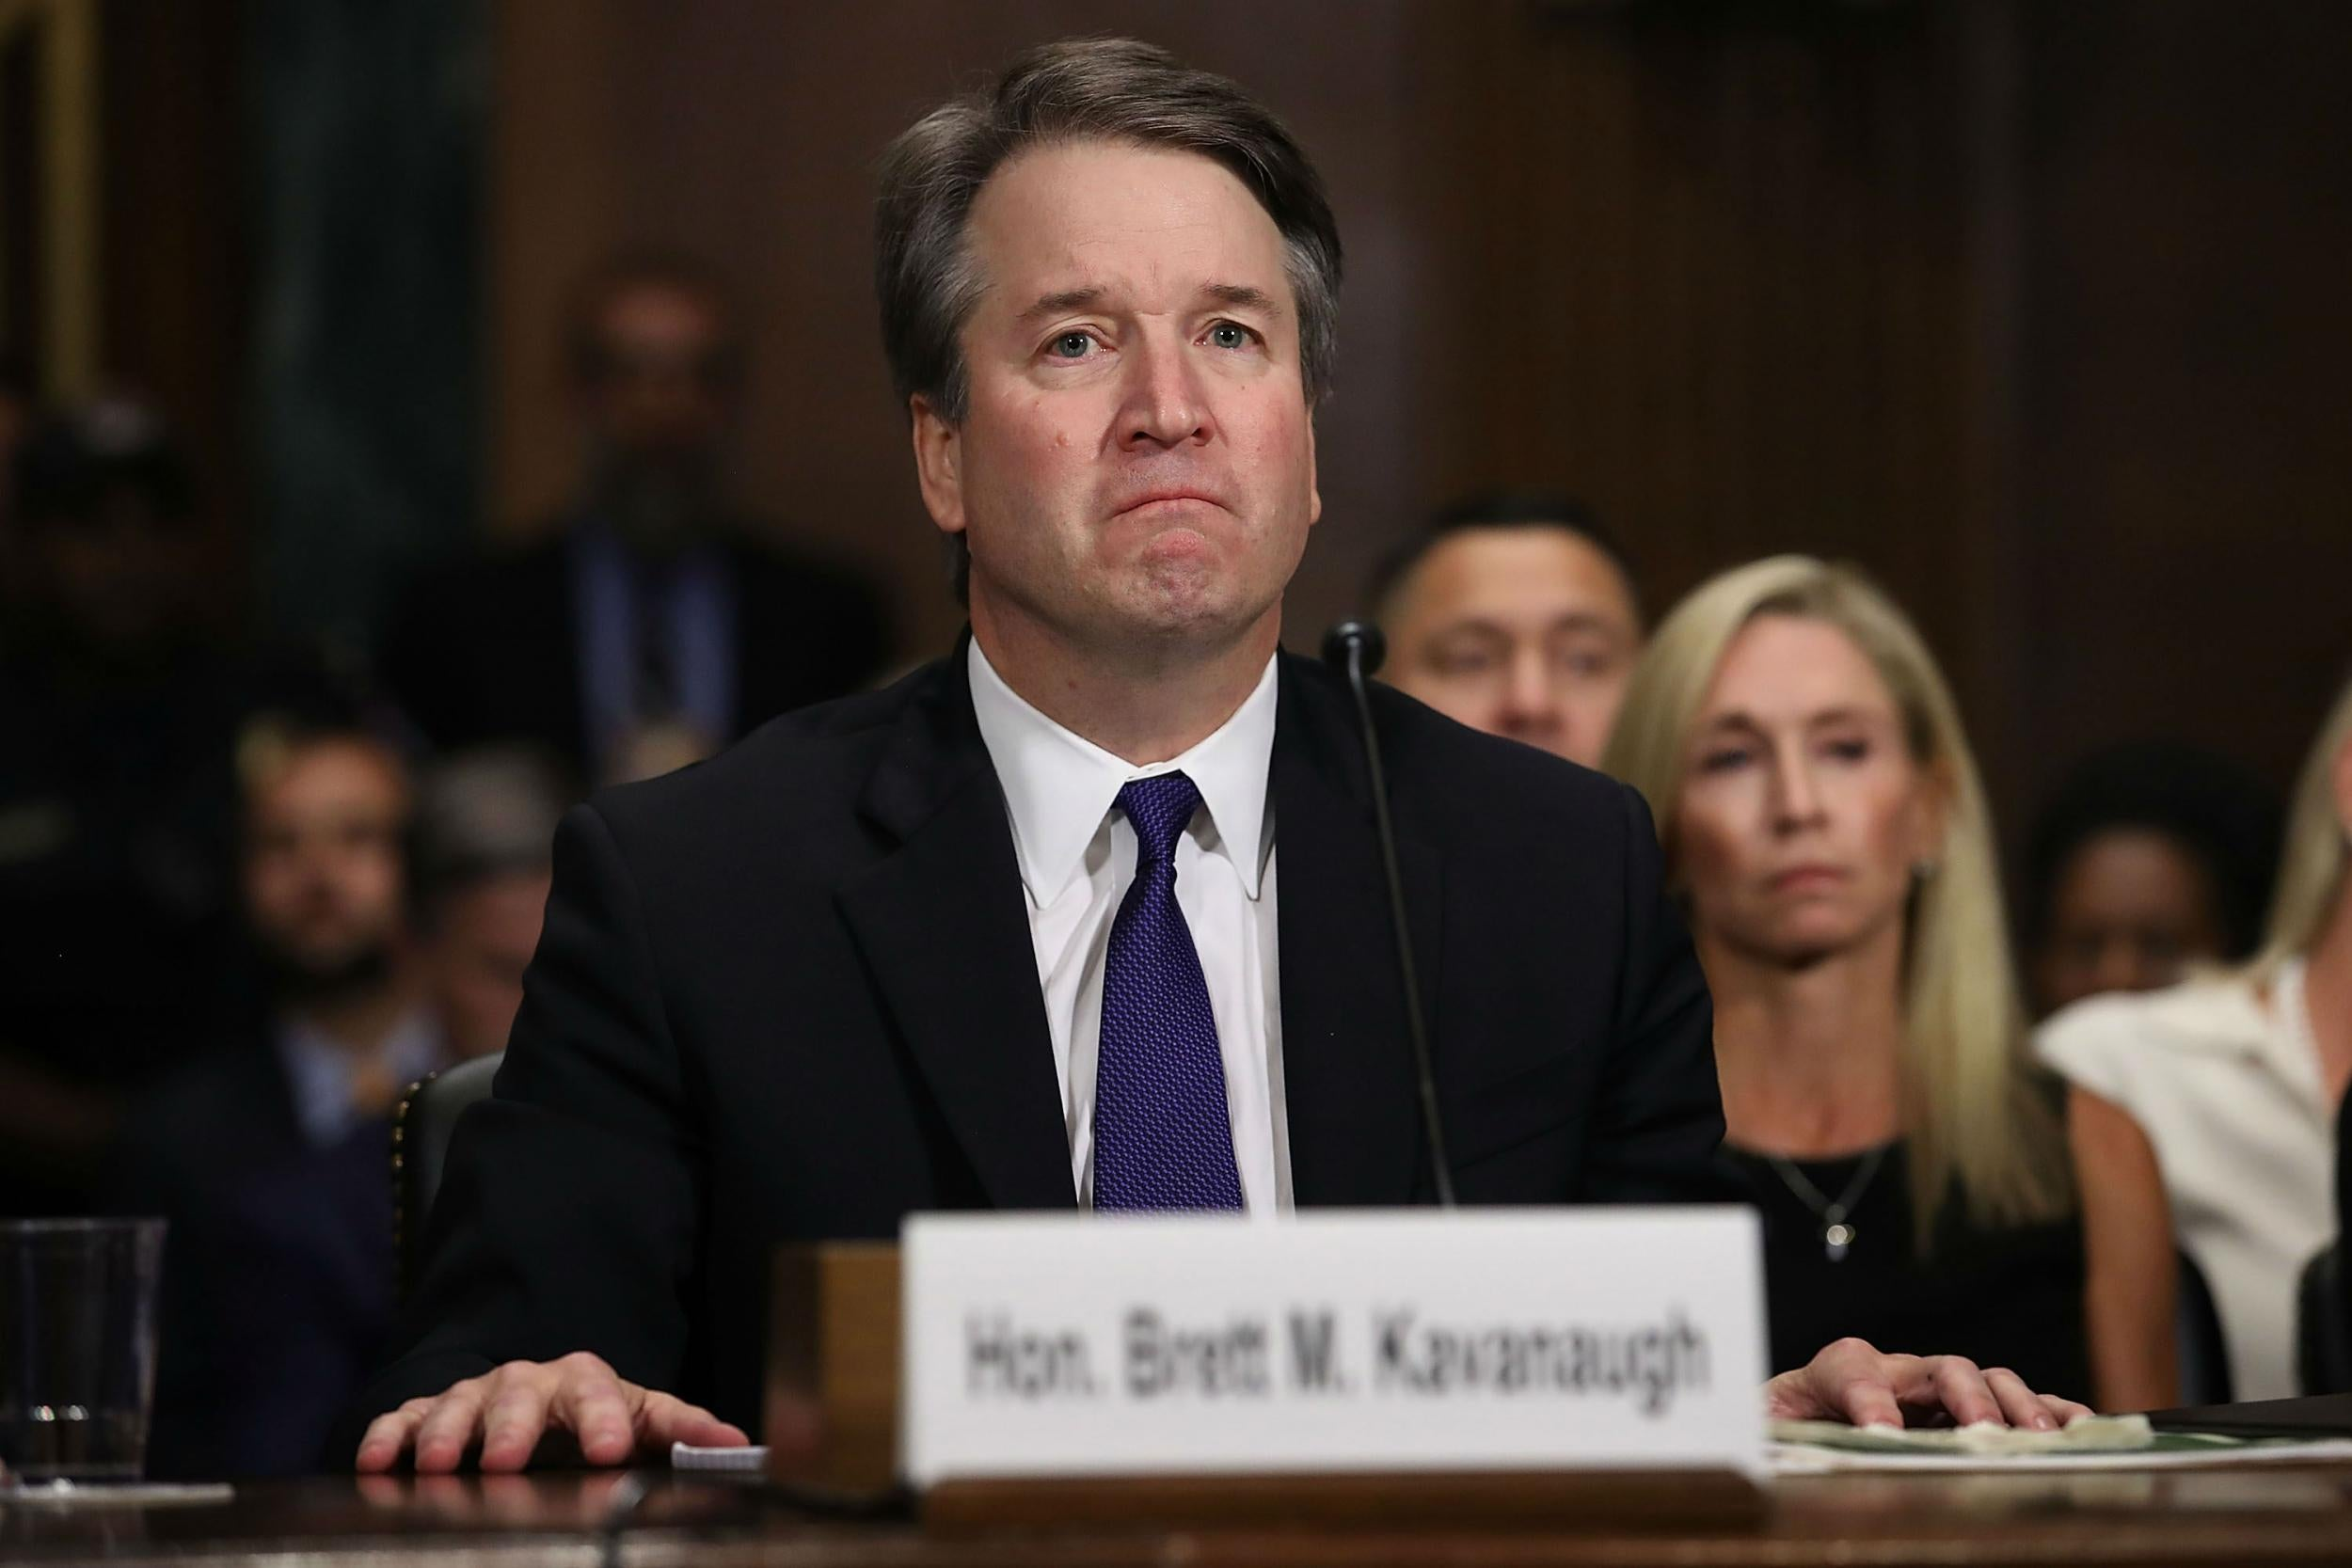 Trump denies restricting FBI investigation into Brett Kavanaugh sexual assault allegations